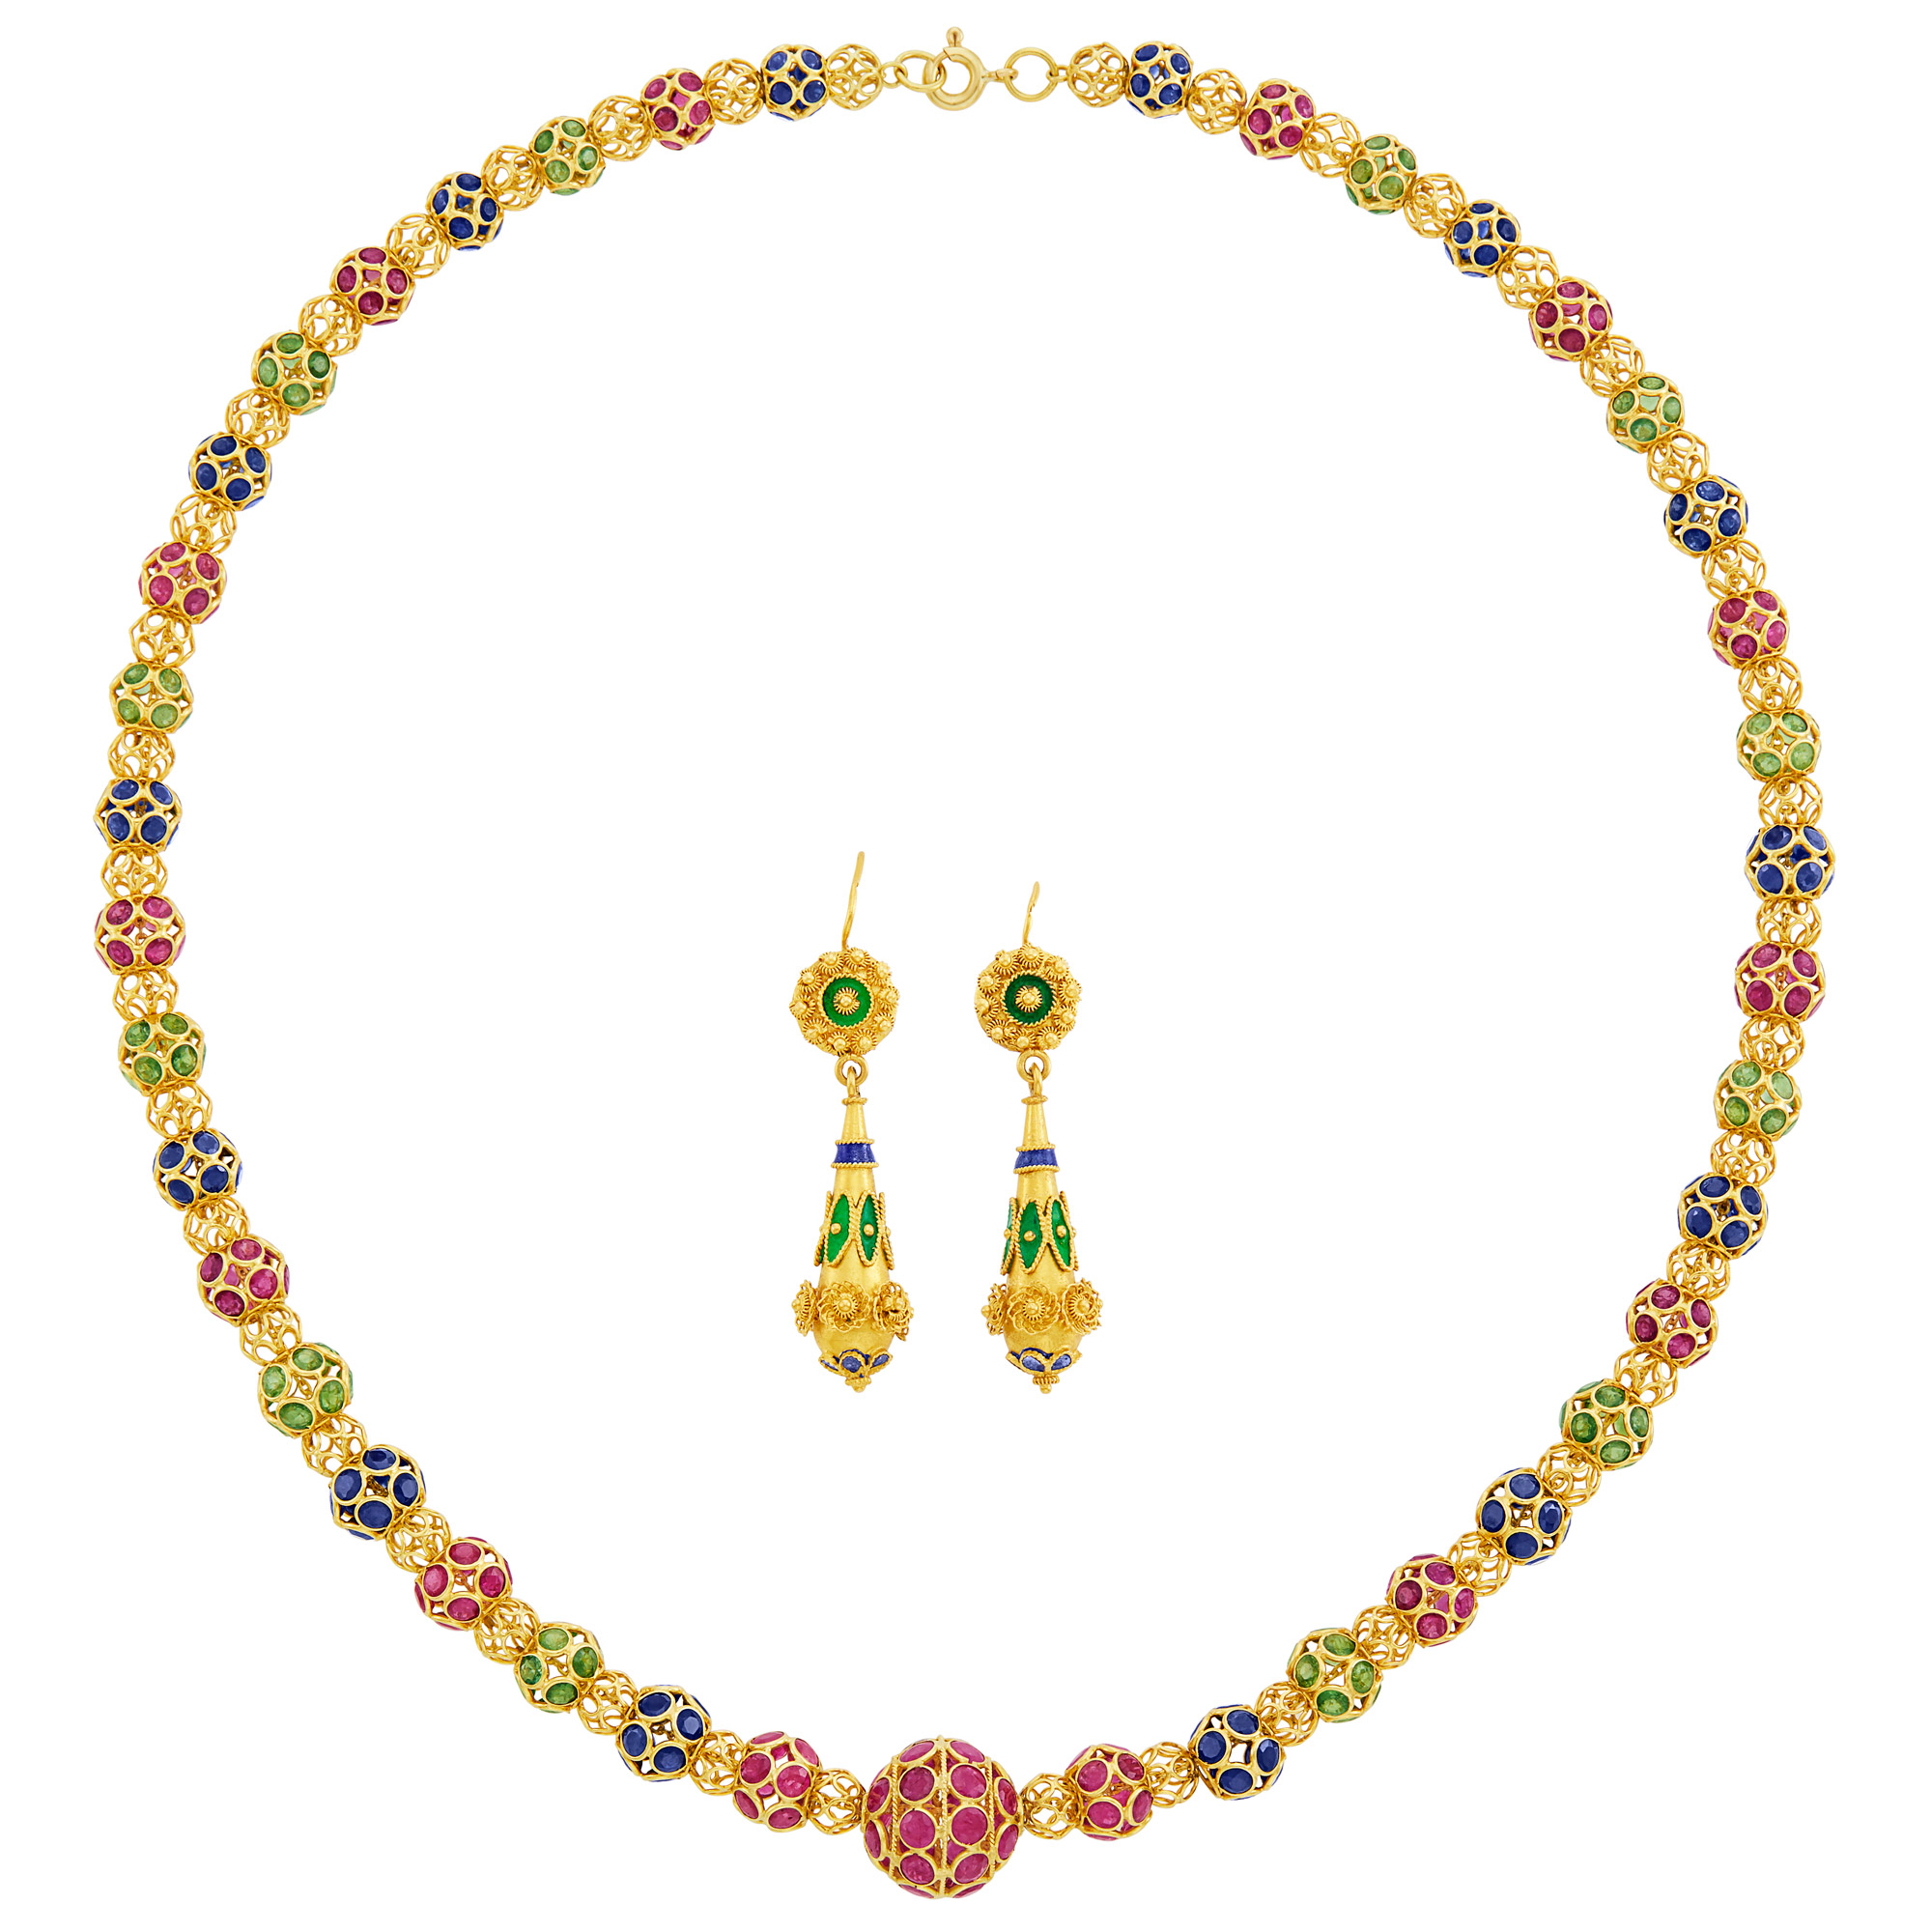 Lot image - Gold and Gem-Set Bead Necklace and Pair of Gold and Enamel Pendant-Earrings